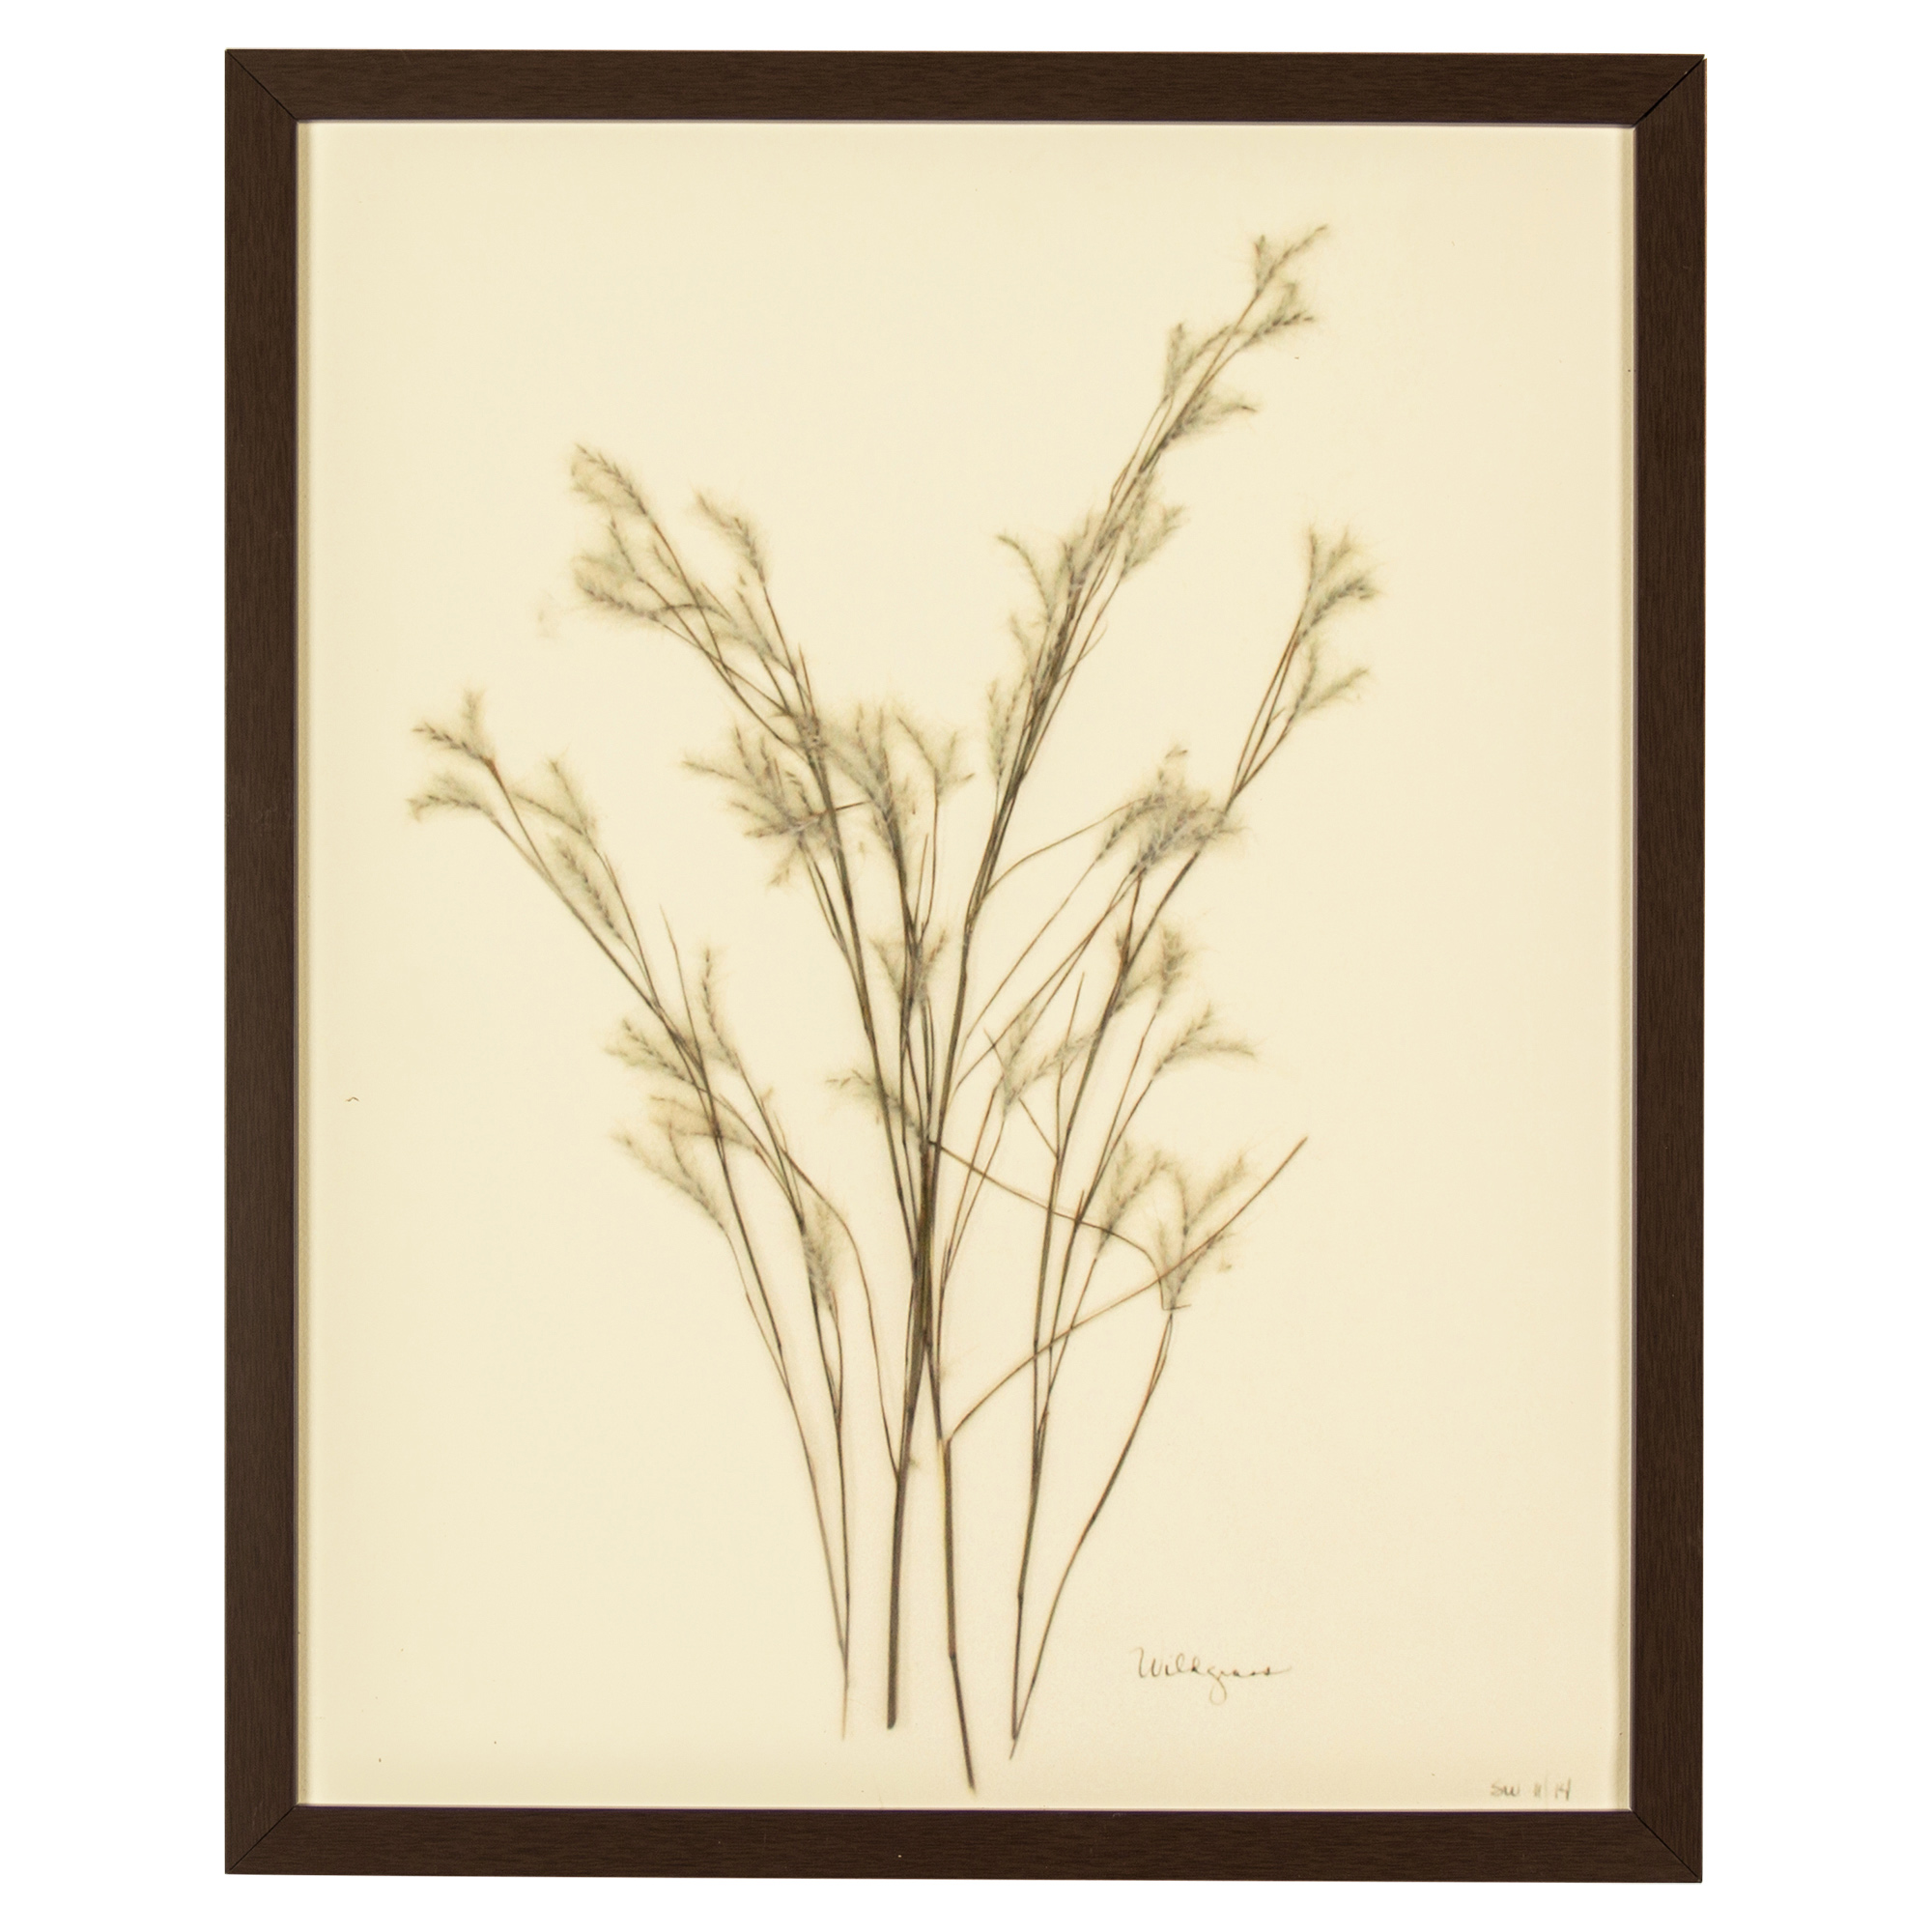 French Country Wildgrass Print Botanical Floral Framed Wall Art